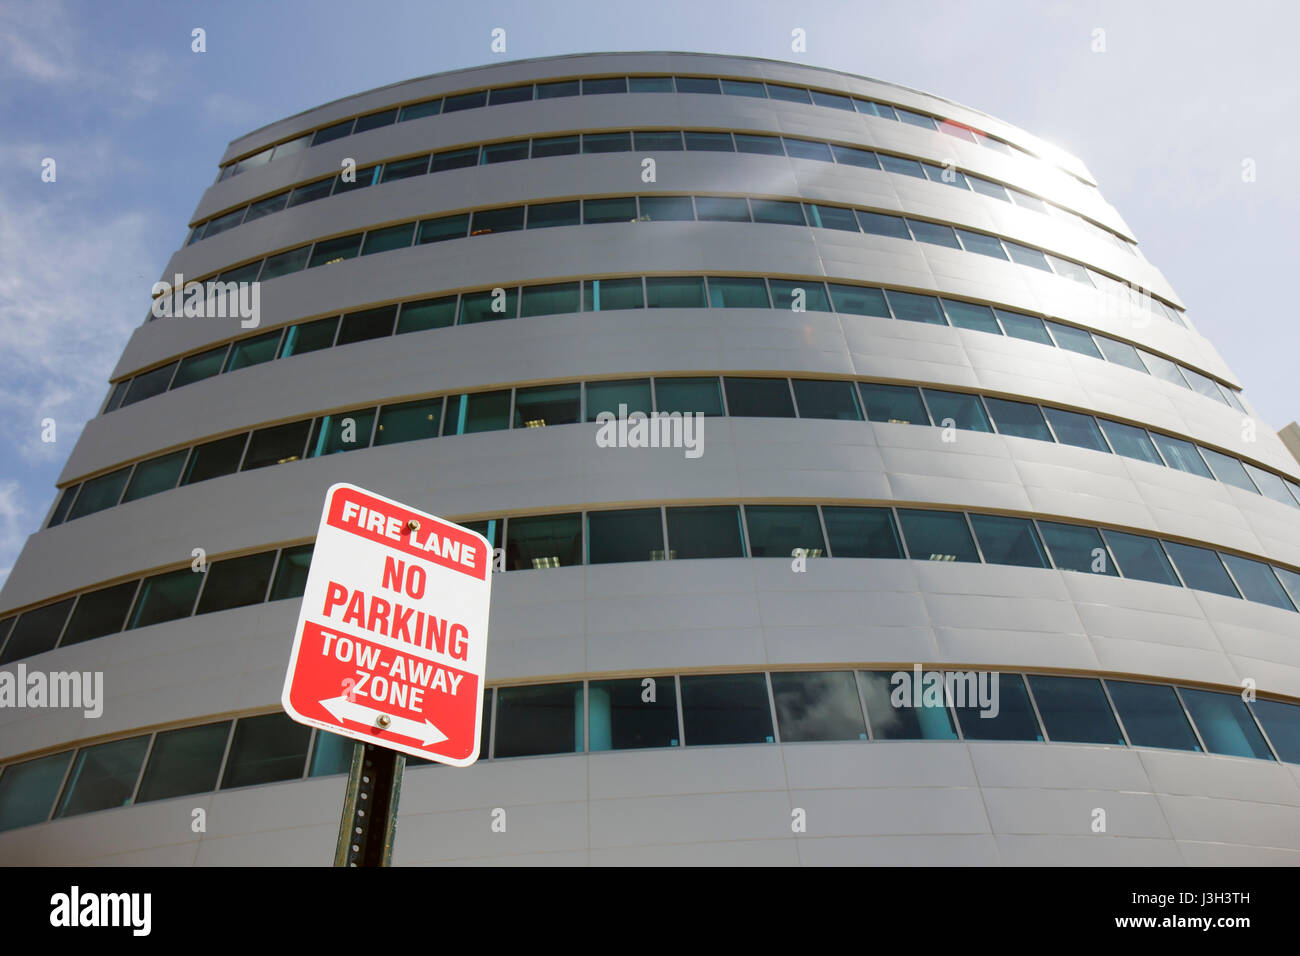 Miami Beach Florida Mount Mt. Sinai Medical Center hospital medical office building sign fire lane tow-away zone - Stock Image